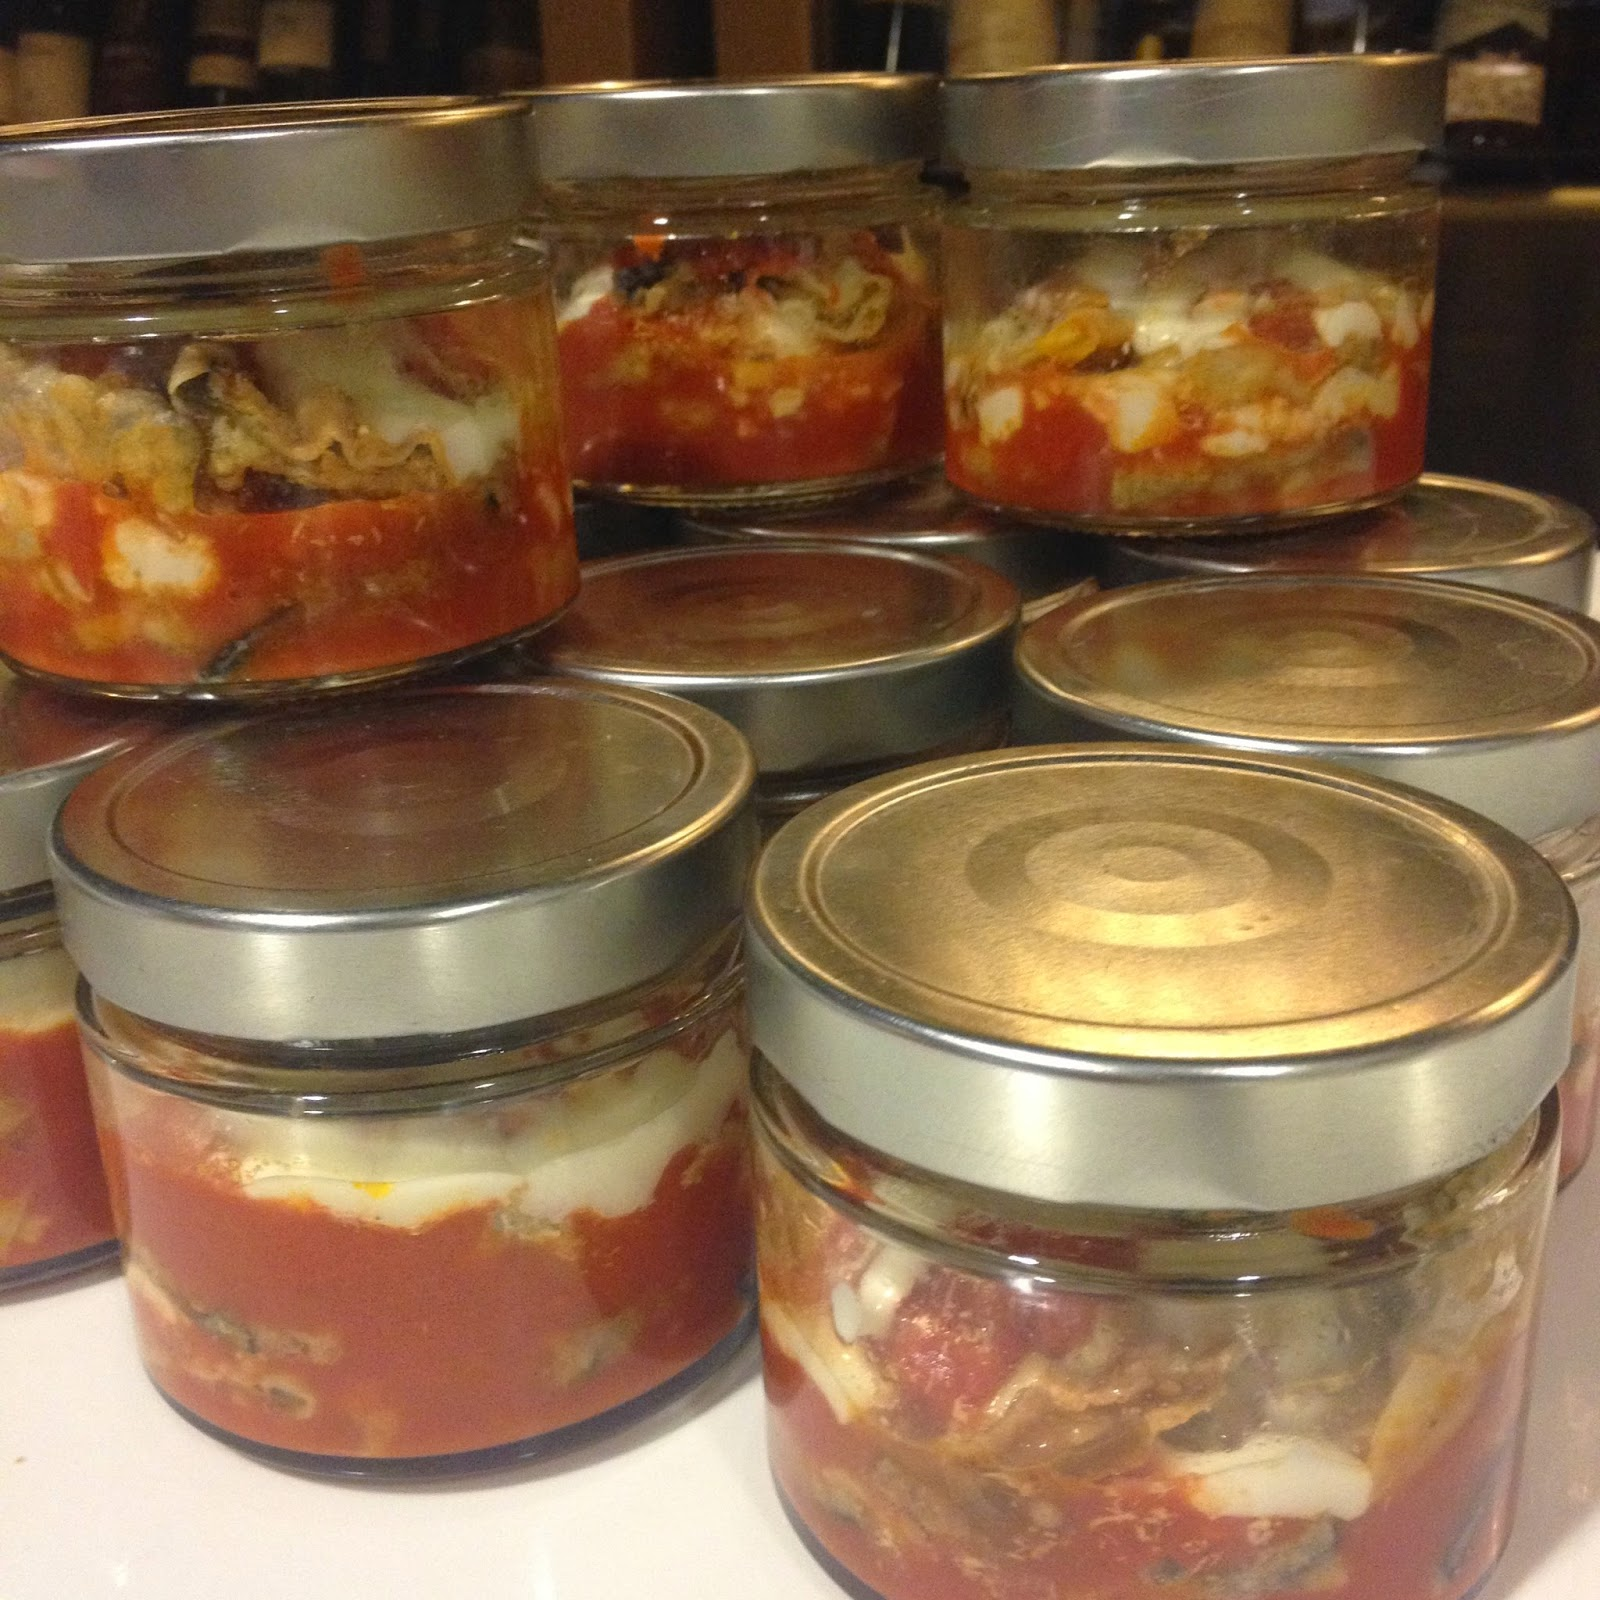 Cucina Antica Tomato Basil Uk The London Foodie A Foodie Pilgrimage In Campania Italy